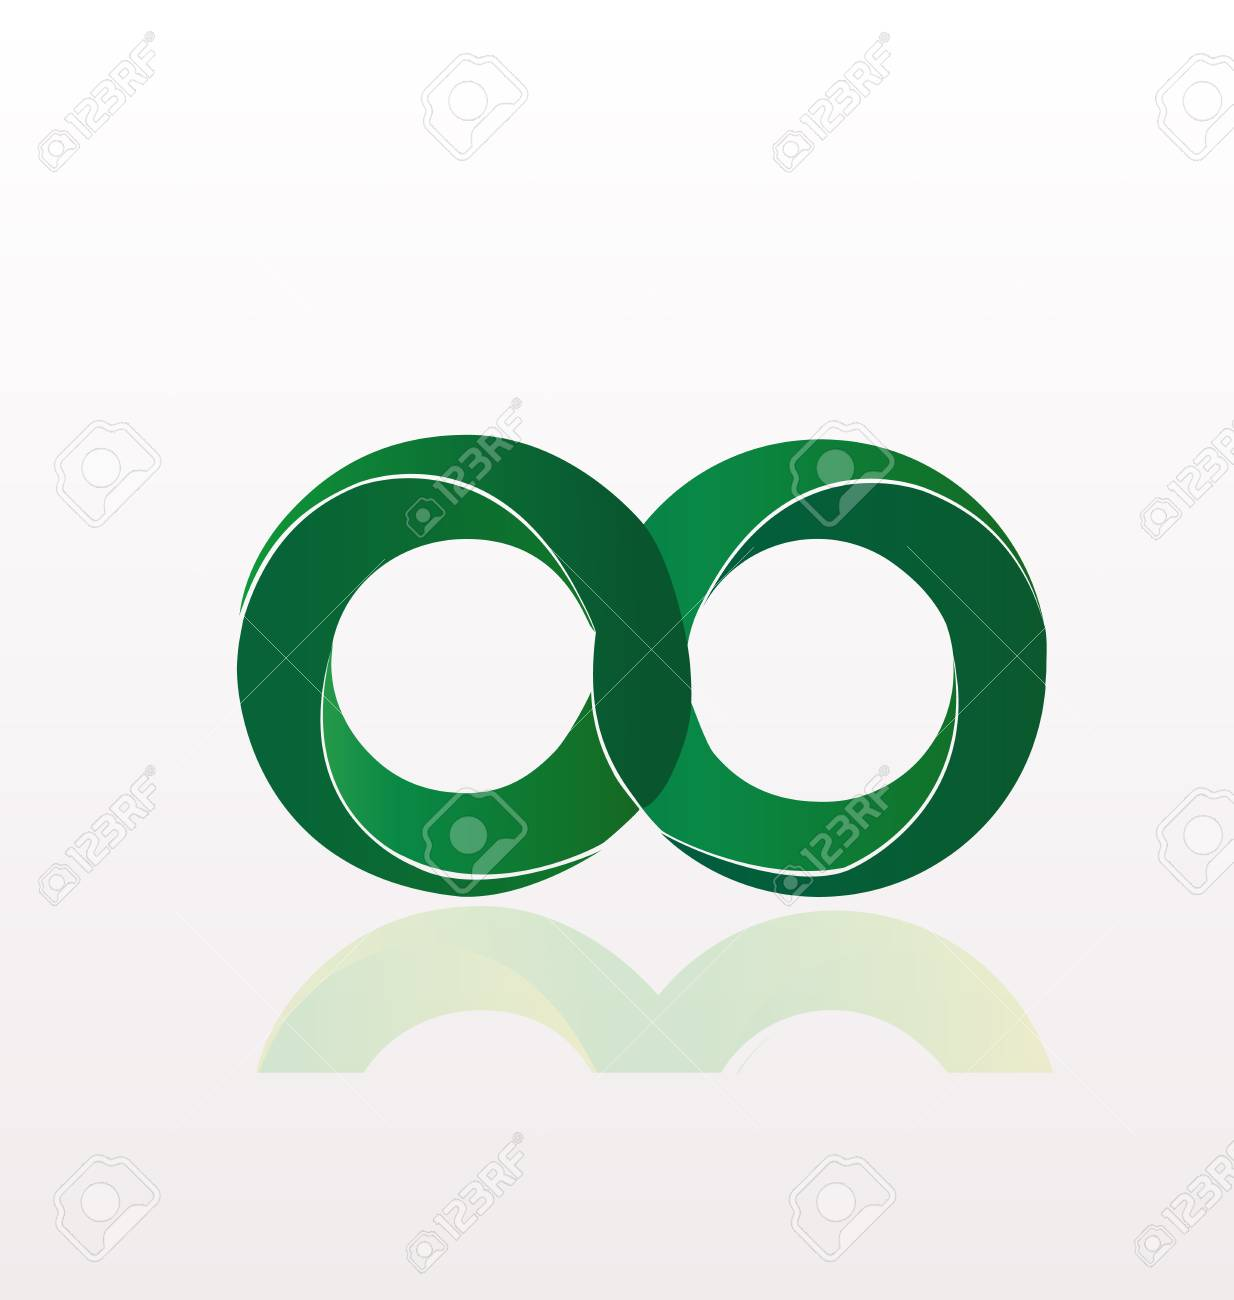 Infinity Symbol Icon Illustration On White Background Royalty Free